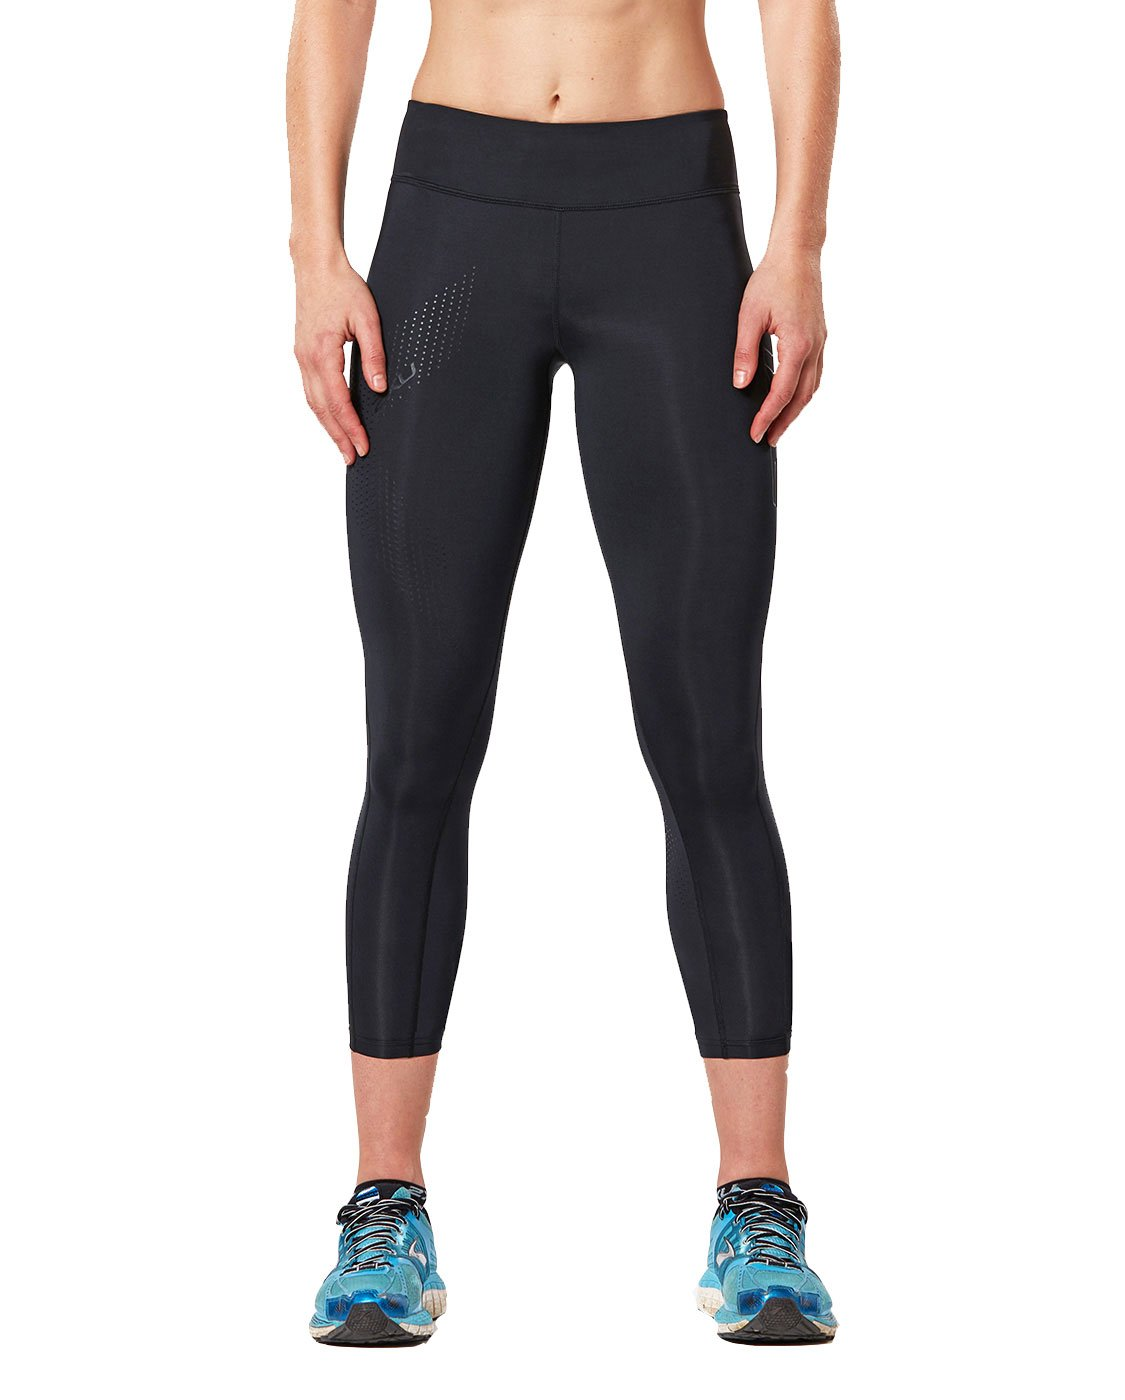 2XU Women's Mid-Rise 7/8 Compression Tights, Black/Dotted Black Logo, X-Small by 2XU (Image #2)